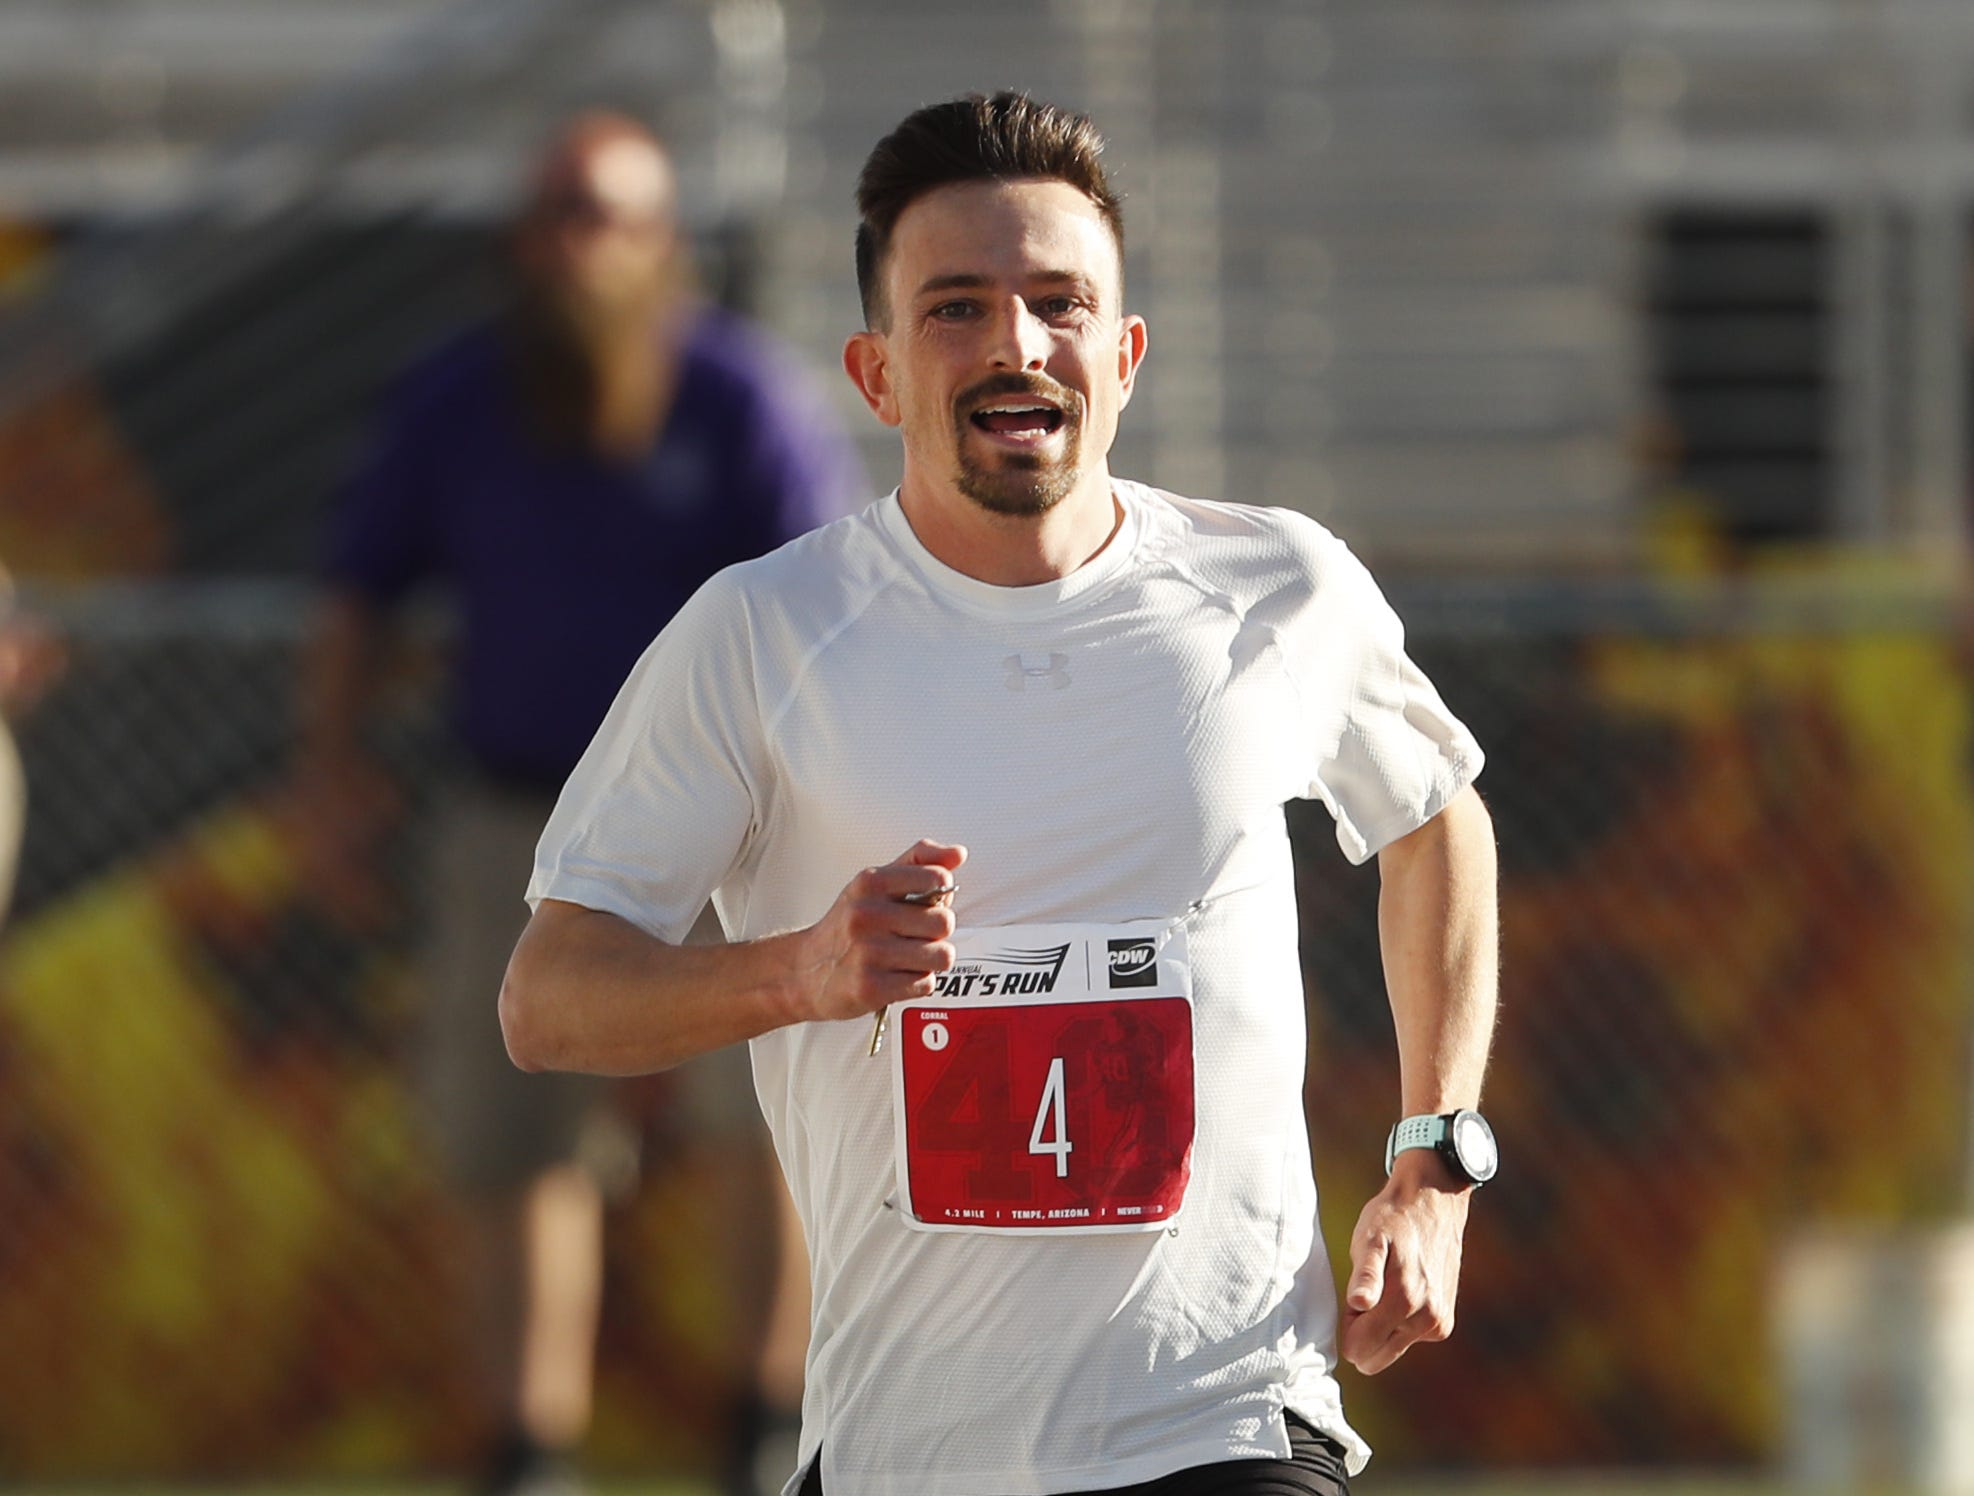 George Alex, of Phoenix, wins first place for men during Pat's Run 2019 in Tempe, Ariz. on April 27, 2019.